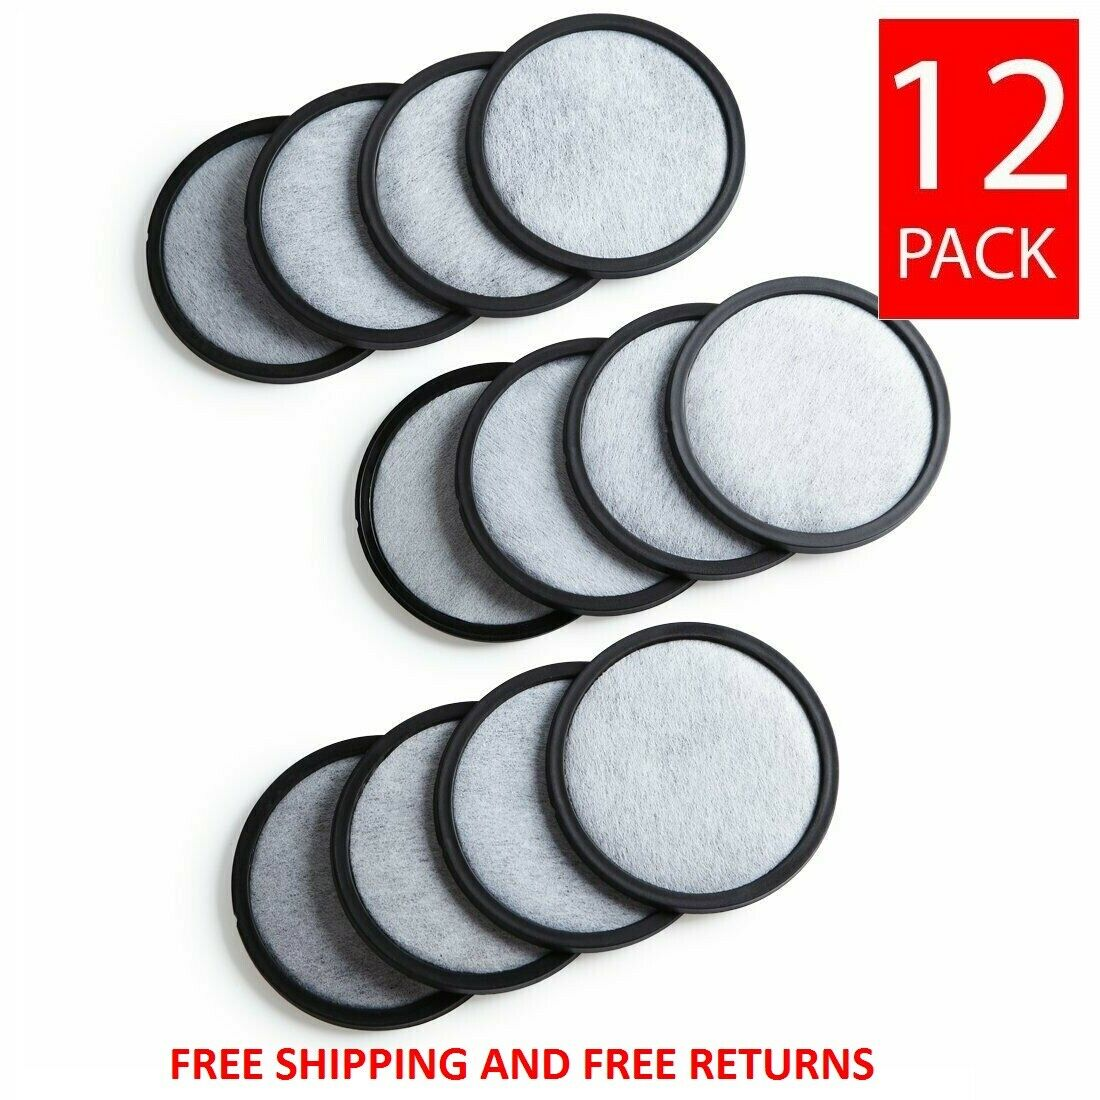 12 Mr. Coffee Replacement Charcoal Water Filter Disks for AL